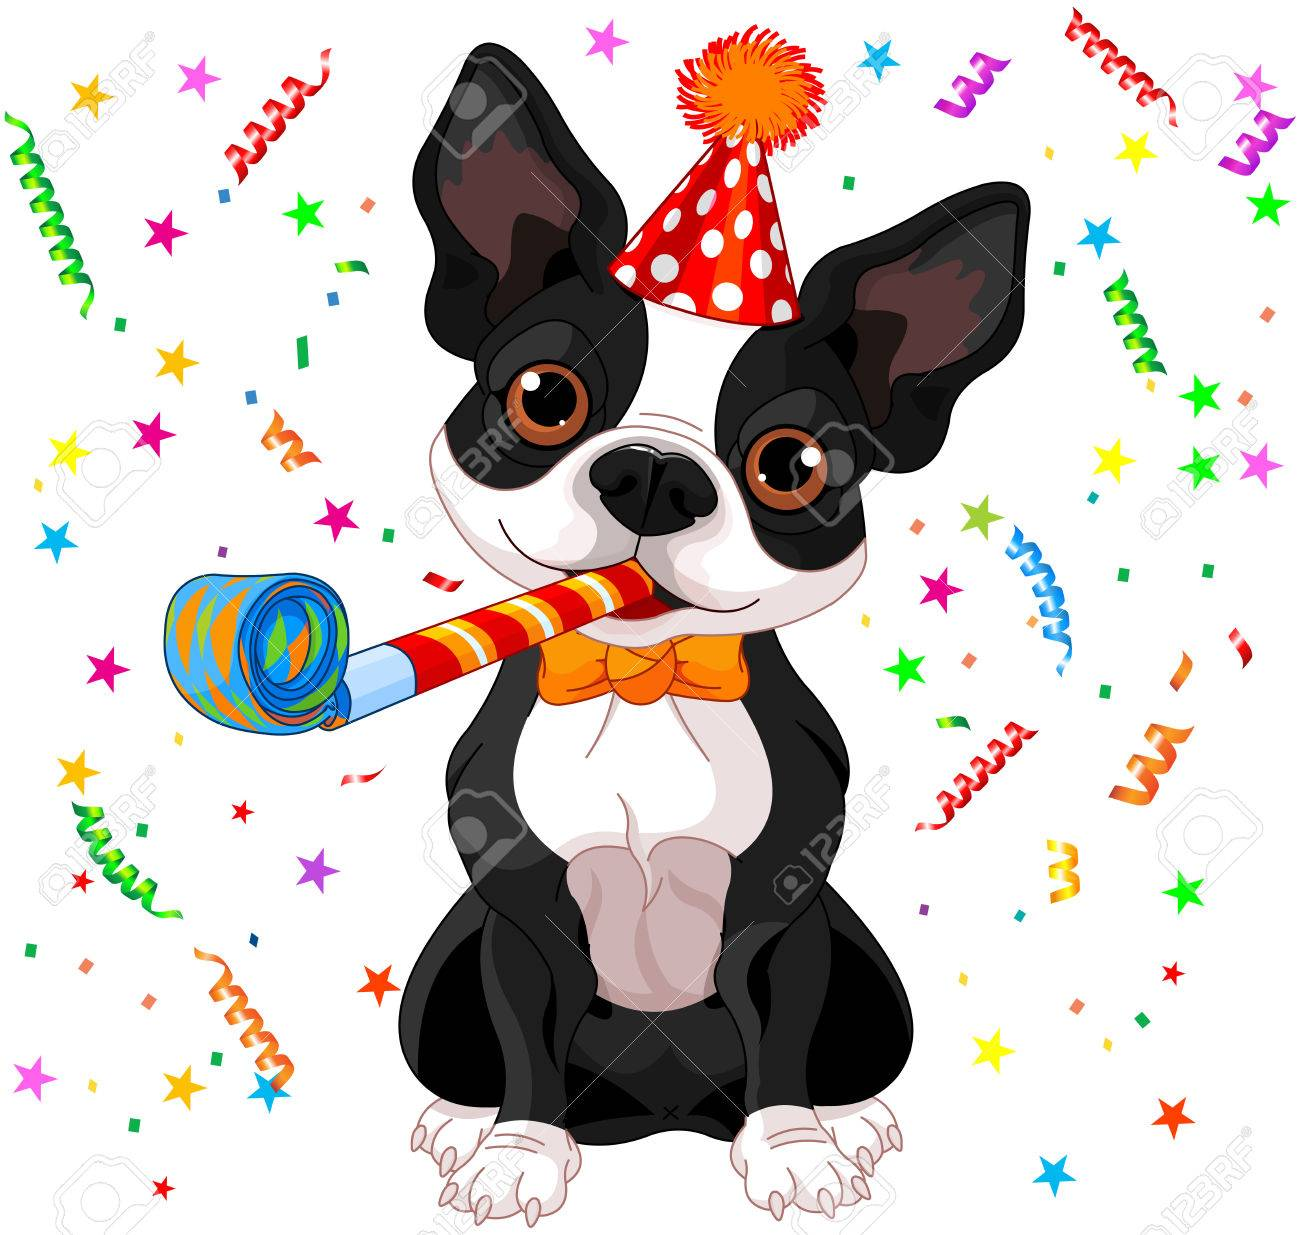 Les aboiements des chiens ont-ils un sens? 35588778-illustration-of-cute-boston-terrier-celebrating